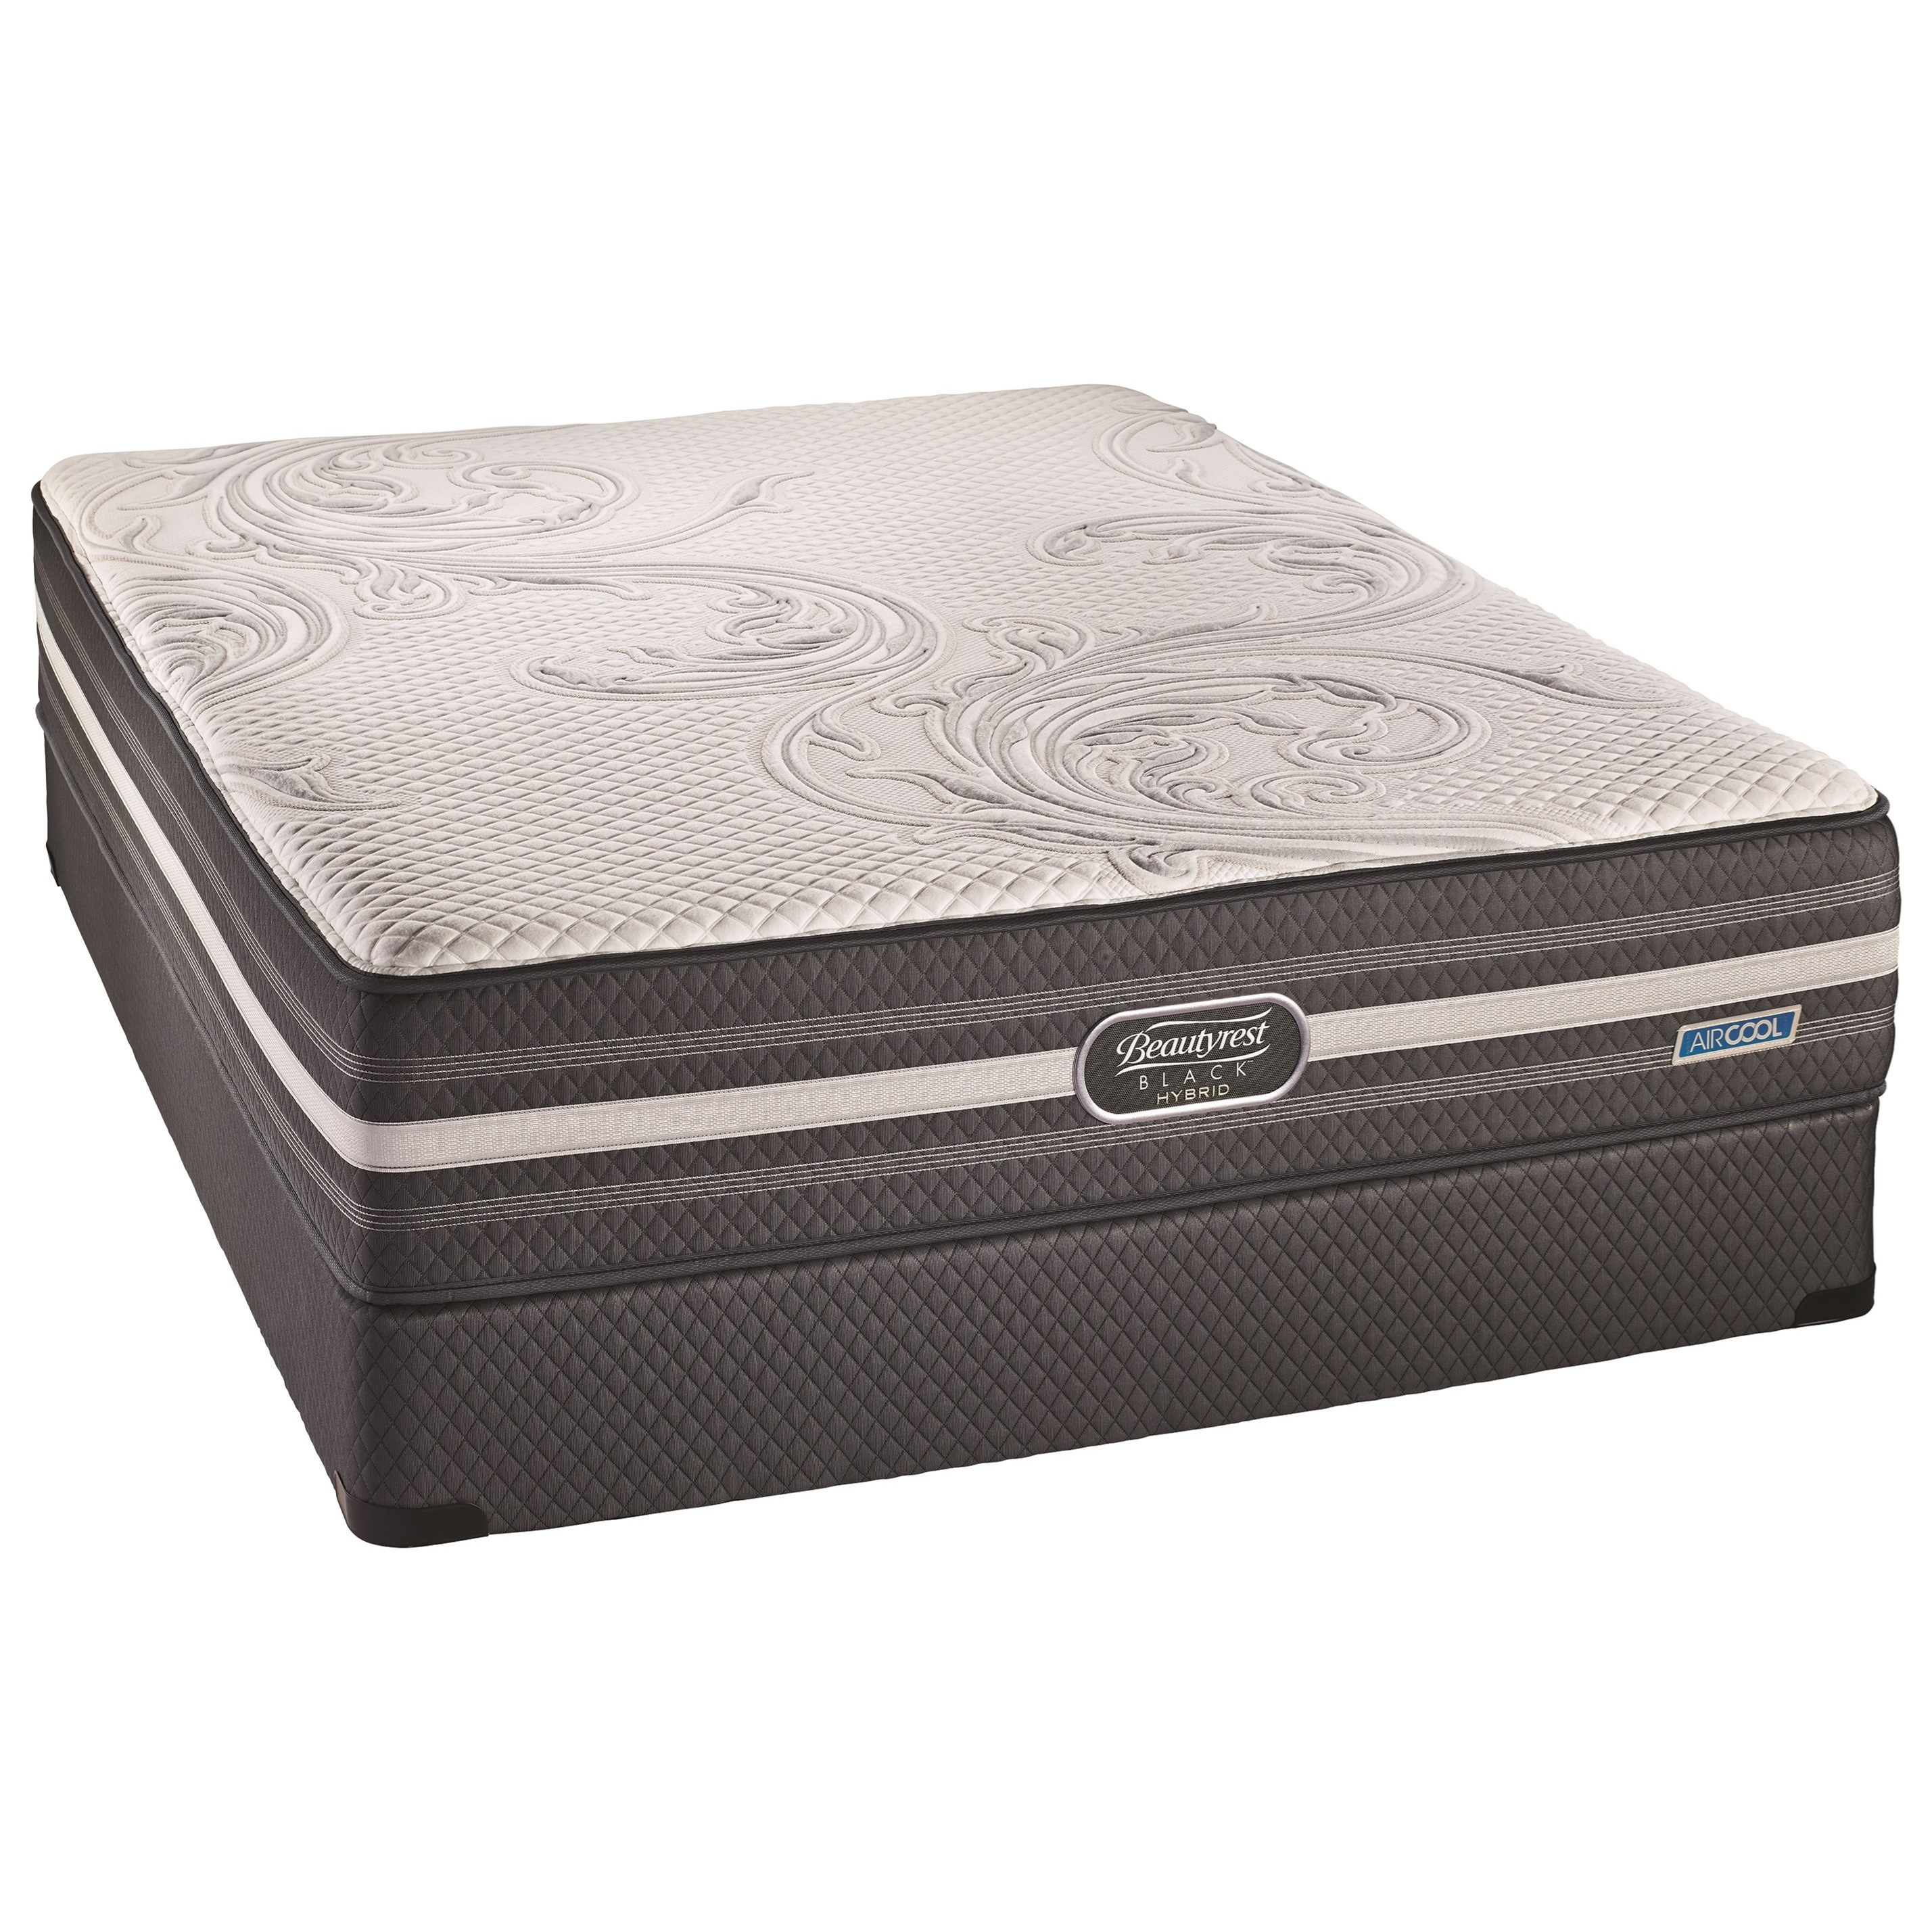 BR Black Hybrid Valentina Lux Firm Twin XL Luxury Firm Hybrid Mattress Set by Beautyrest Canada at Jordan's Home Furnishings